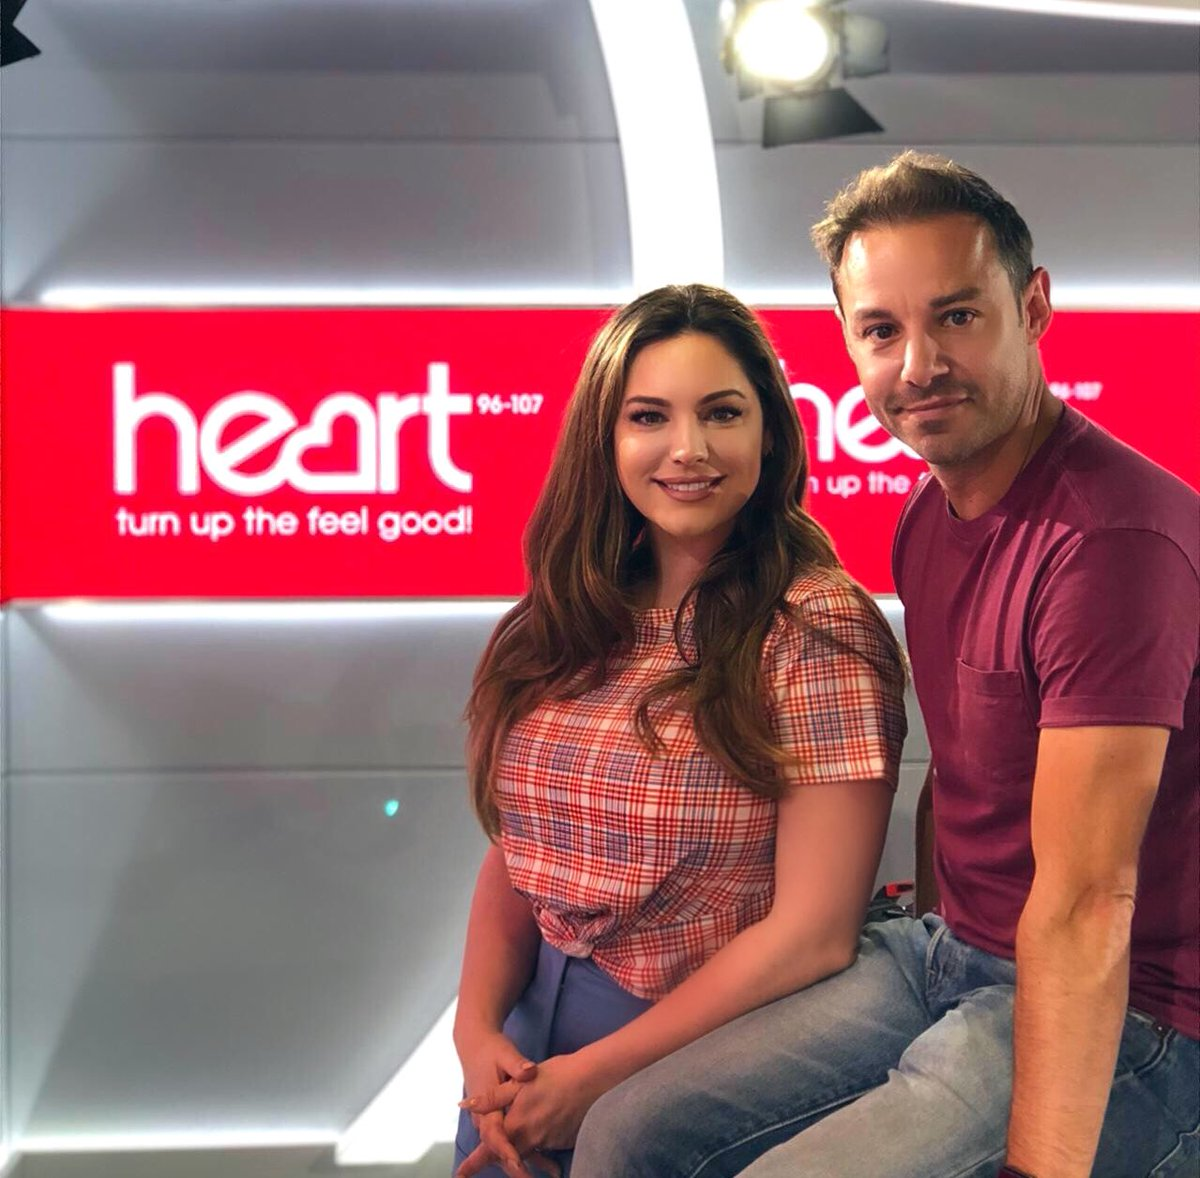 Join us Today 6-10am @thisisheart ☕️ https://t.co/T2WHTg4ozD